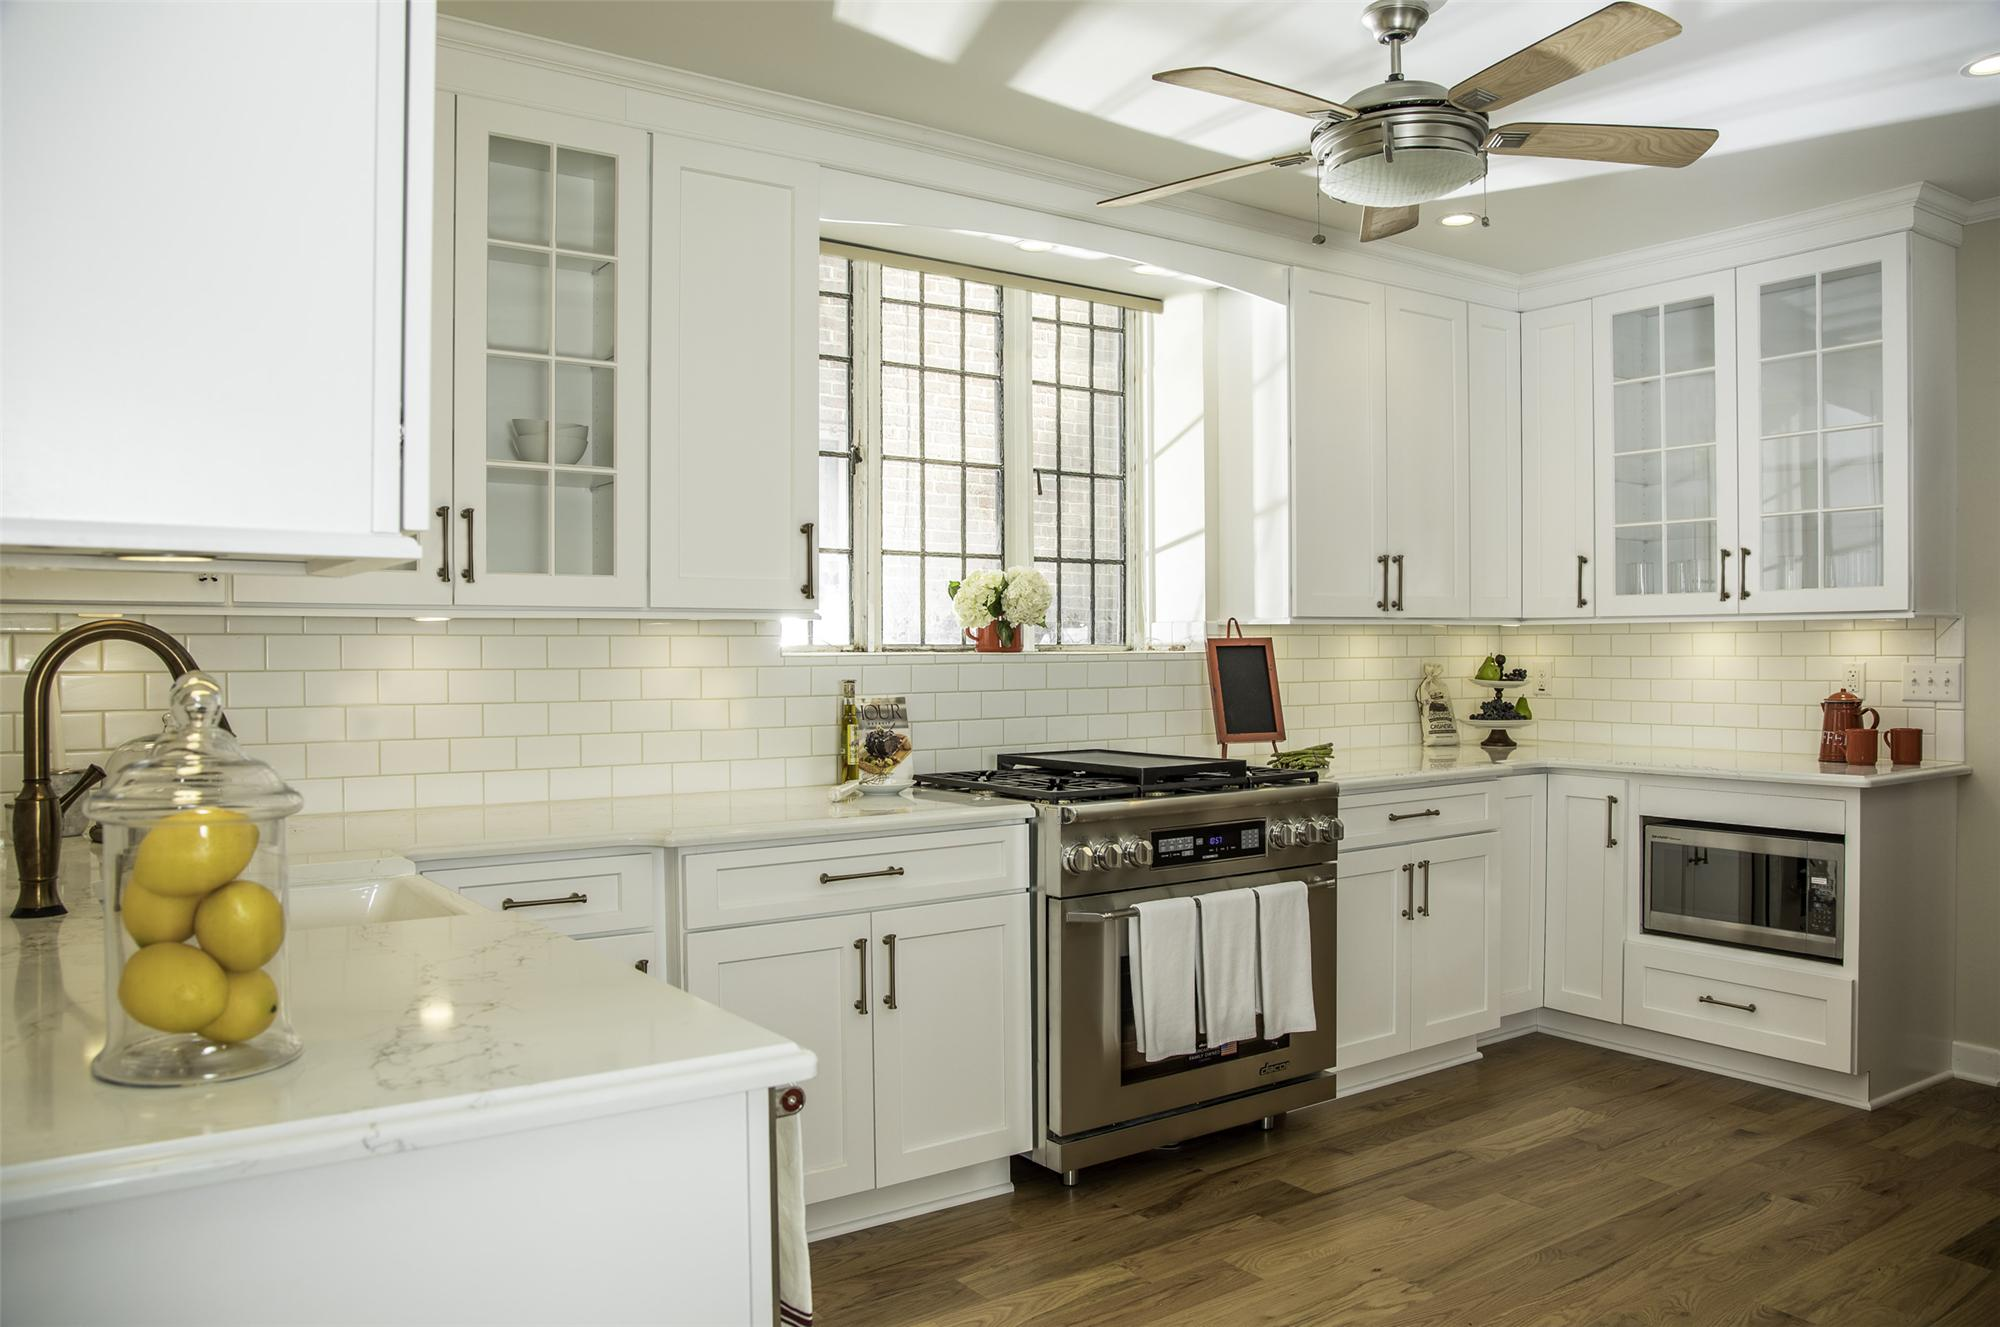 kitchen with glass-doored cabinets